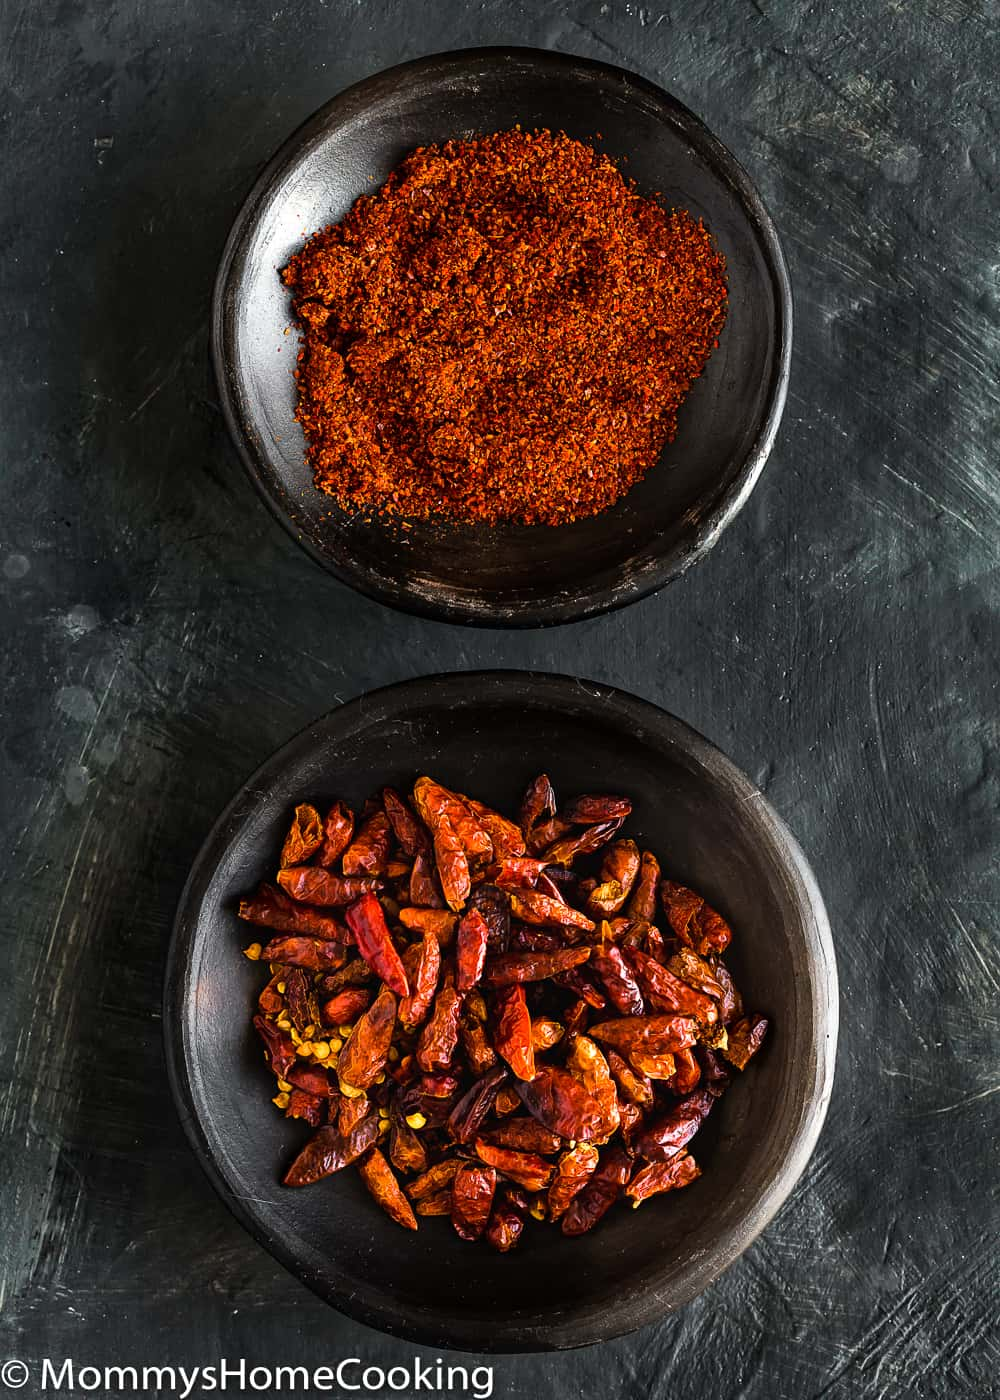 peri peri chili peppers